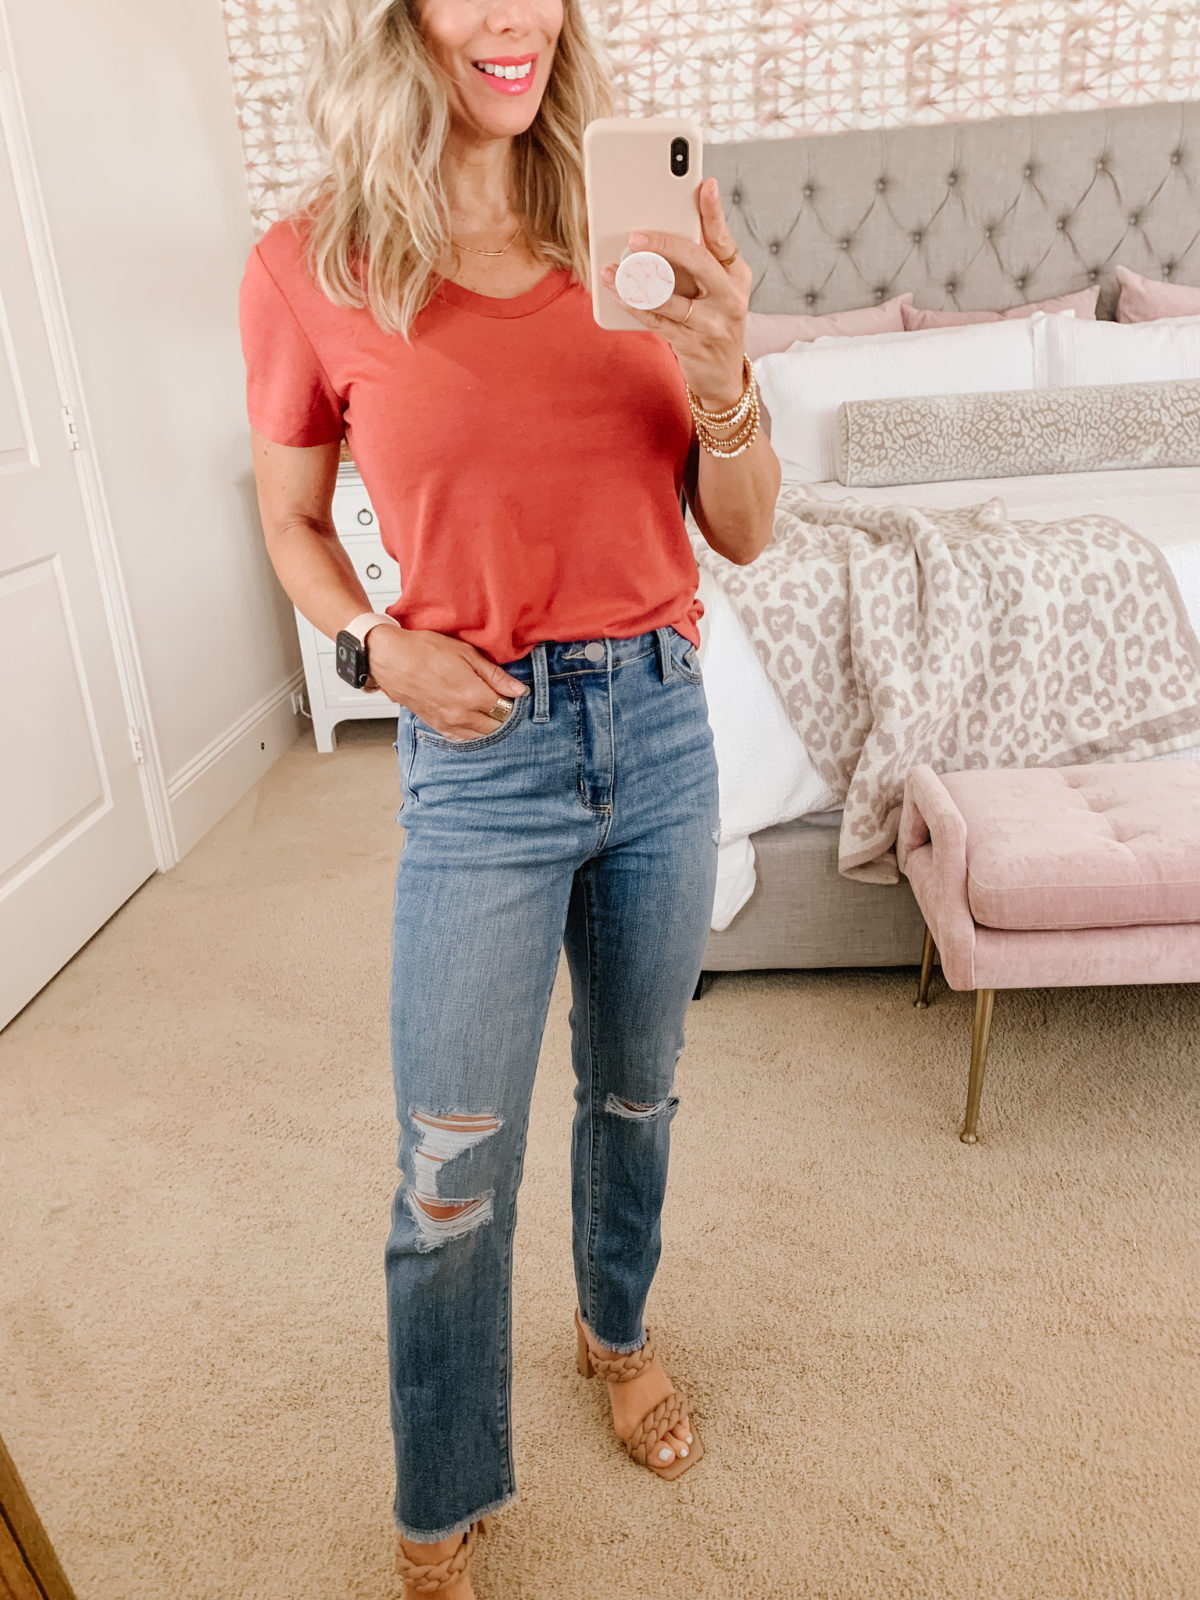 Target Fashion, V Neck Tee and Distressed Jeans and Sandals